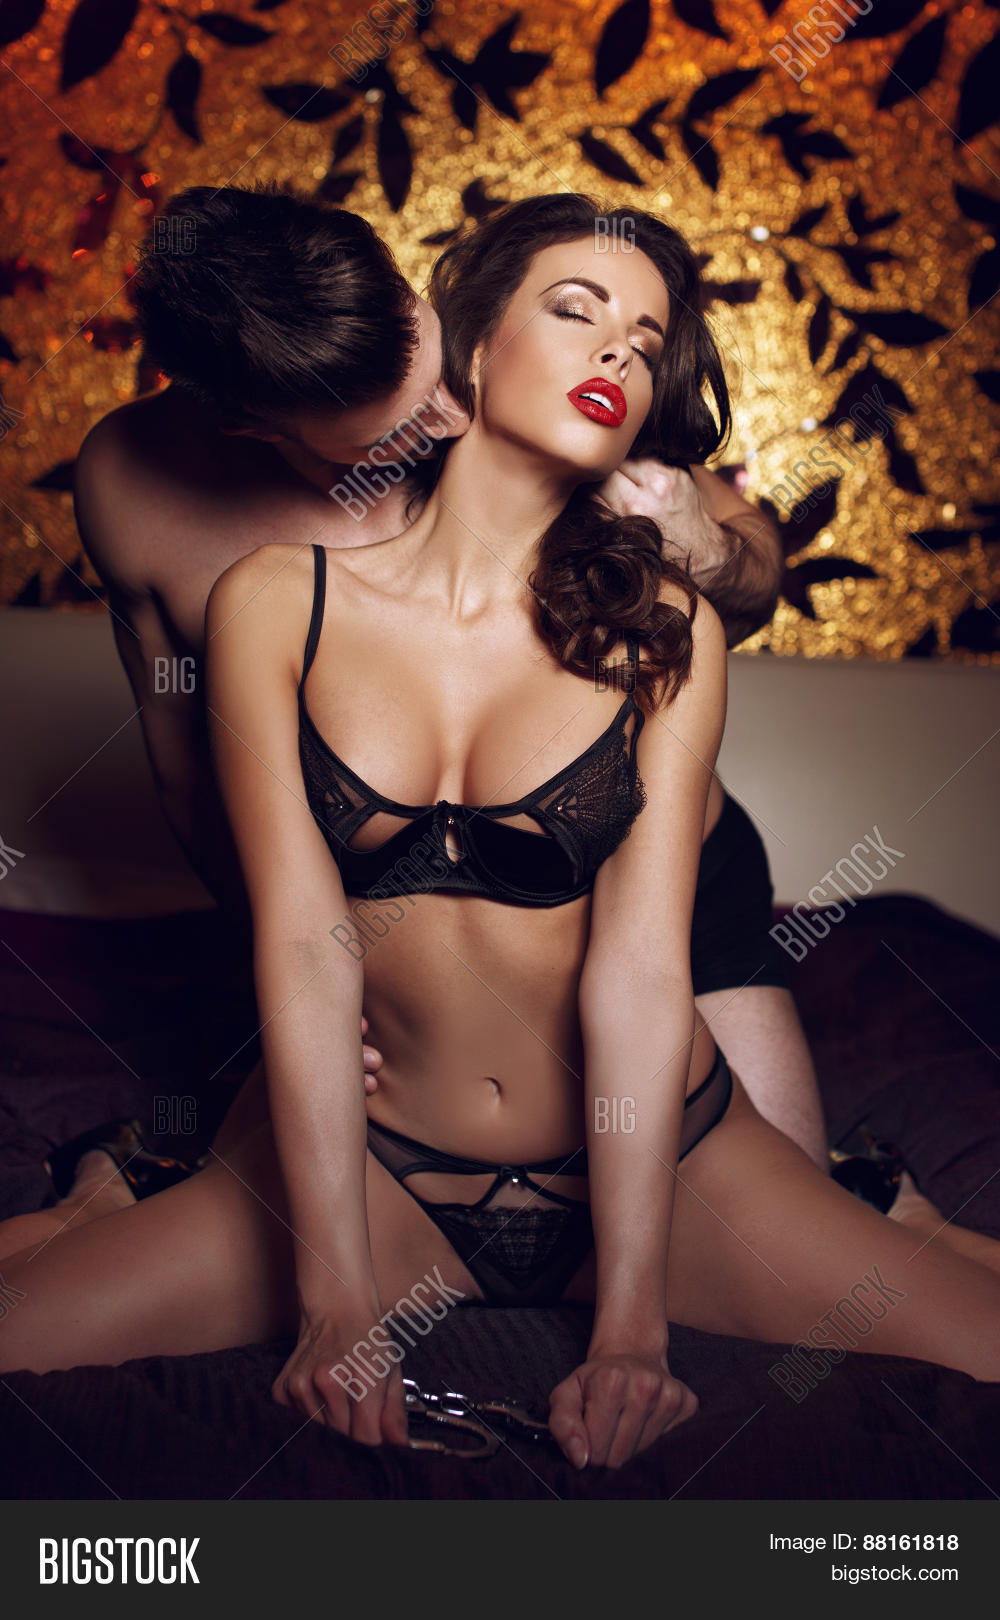 young lover kissing milf neck on image & photo | bigstock